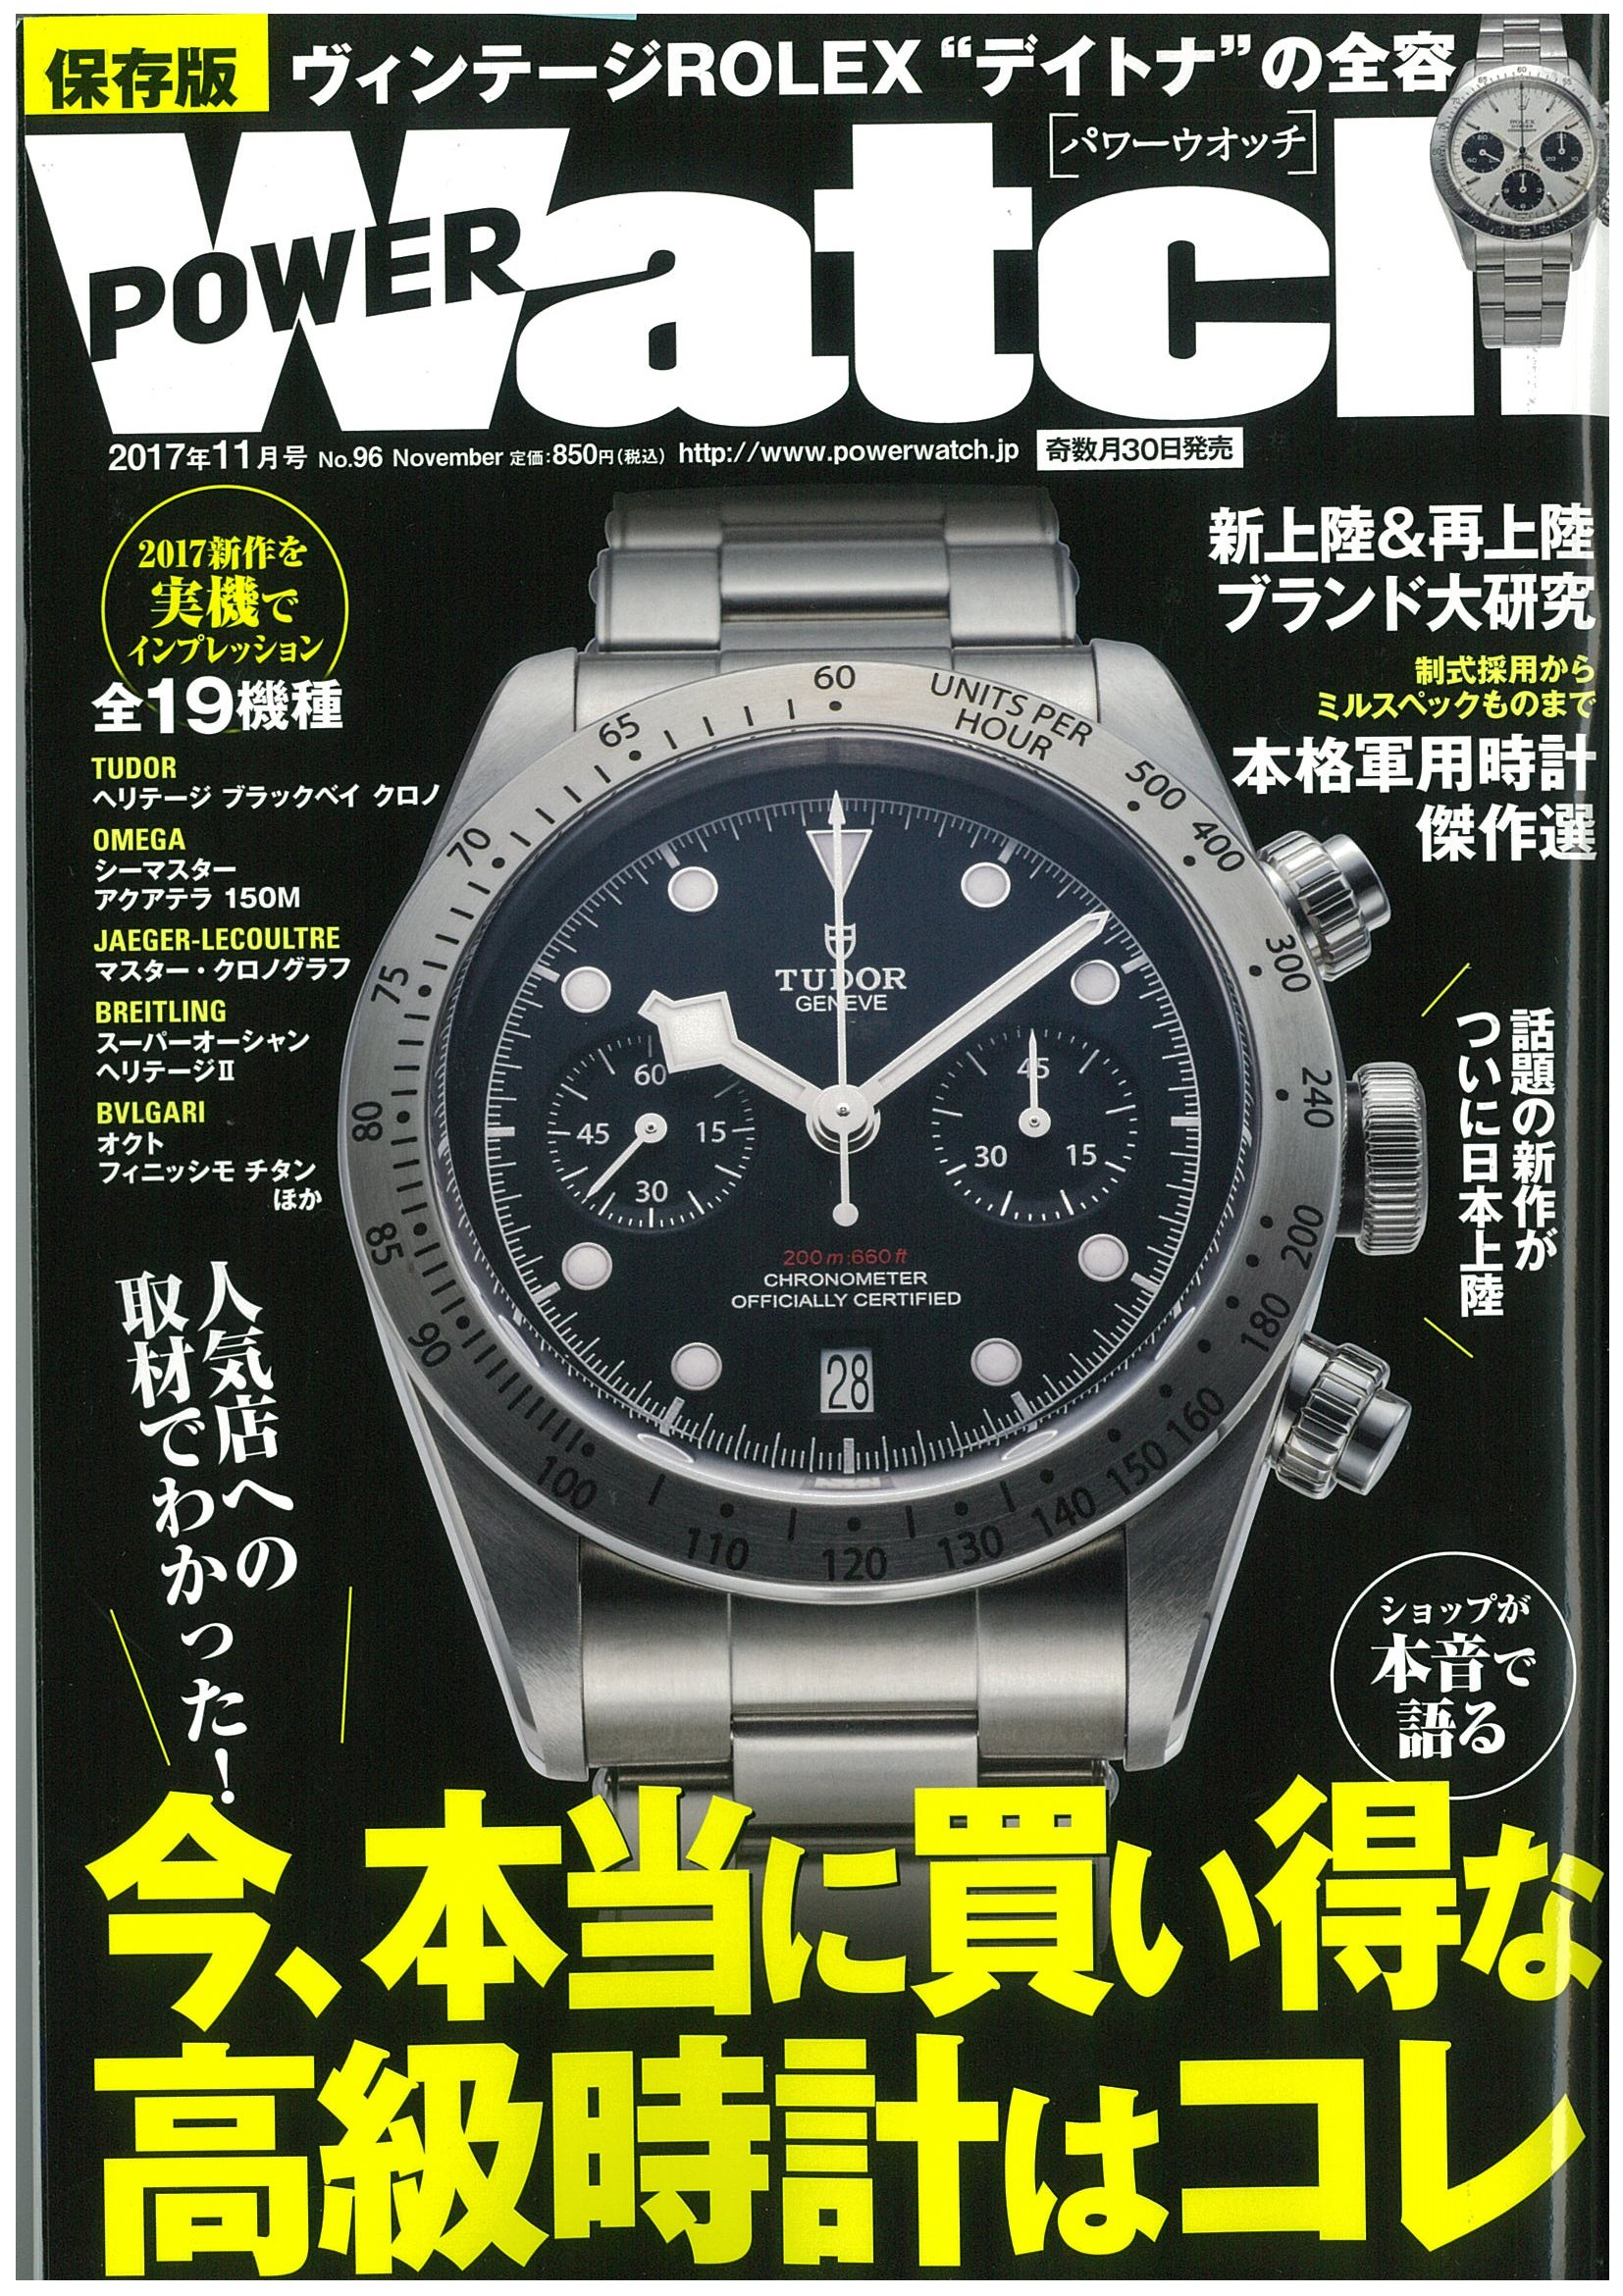 9.30_POWER Watch_CV